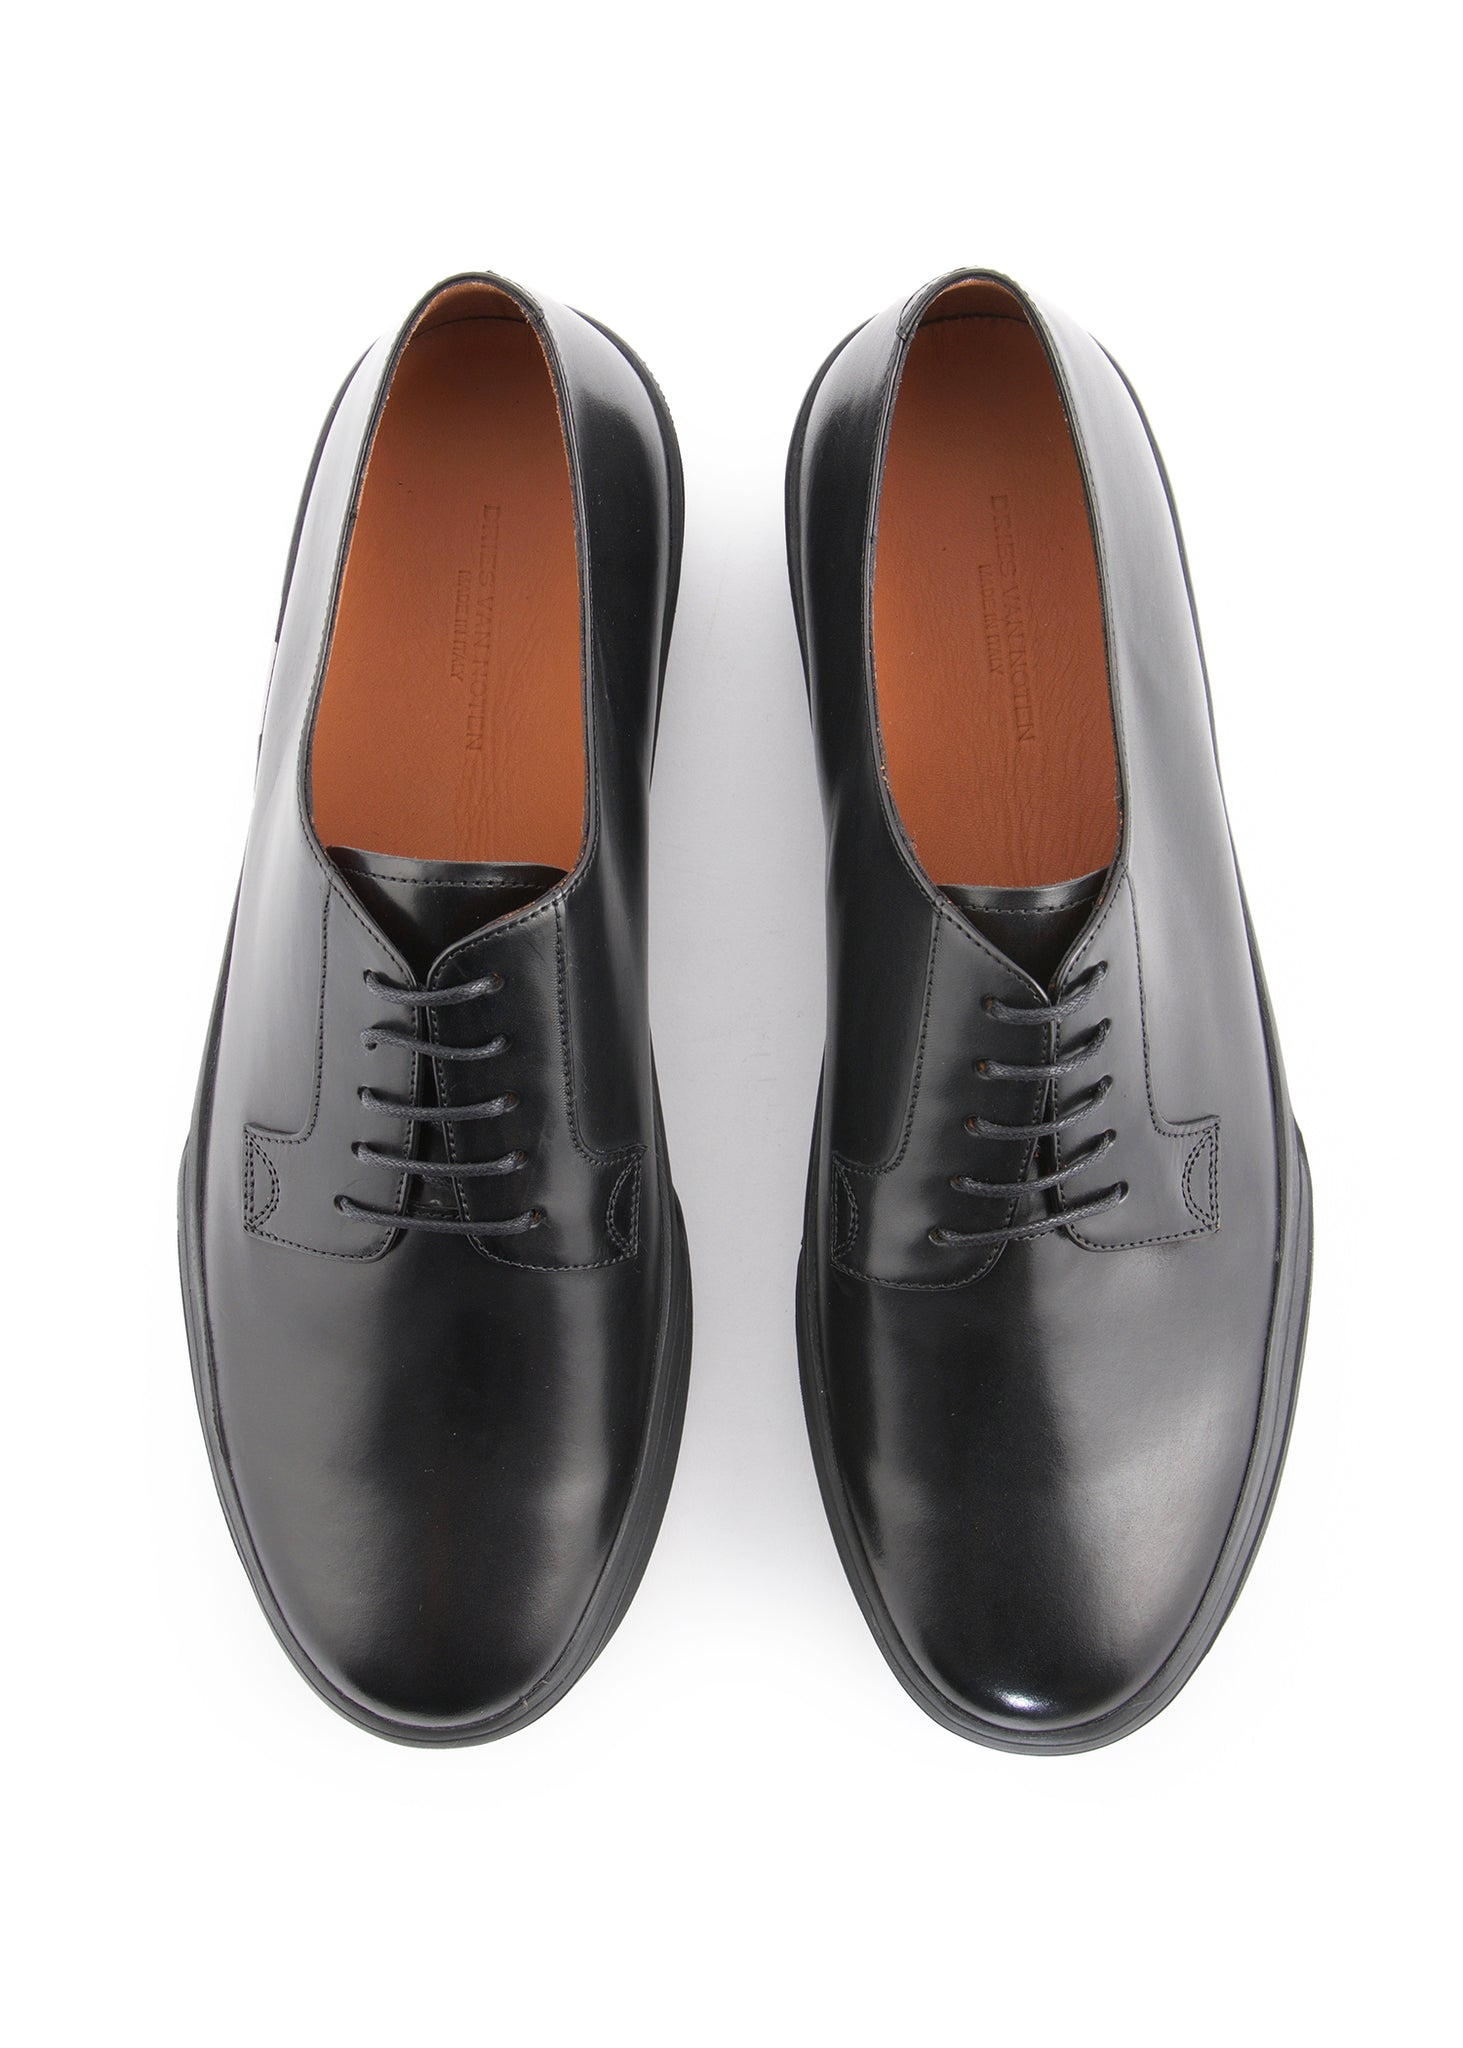 "Baskets en Cuir Poli ""Style Derby"" Noires